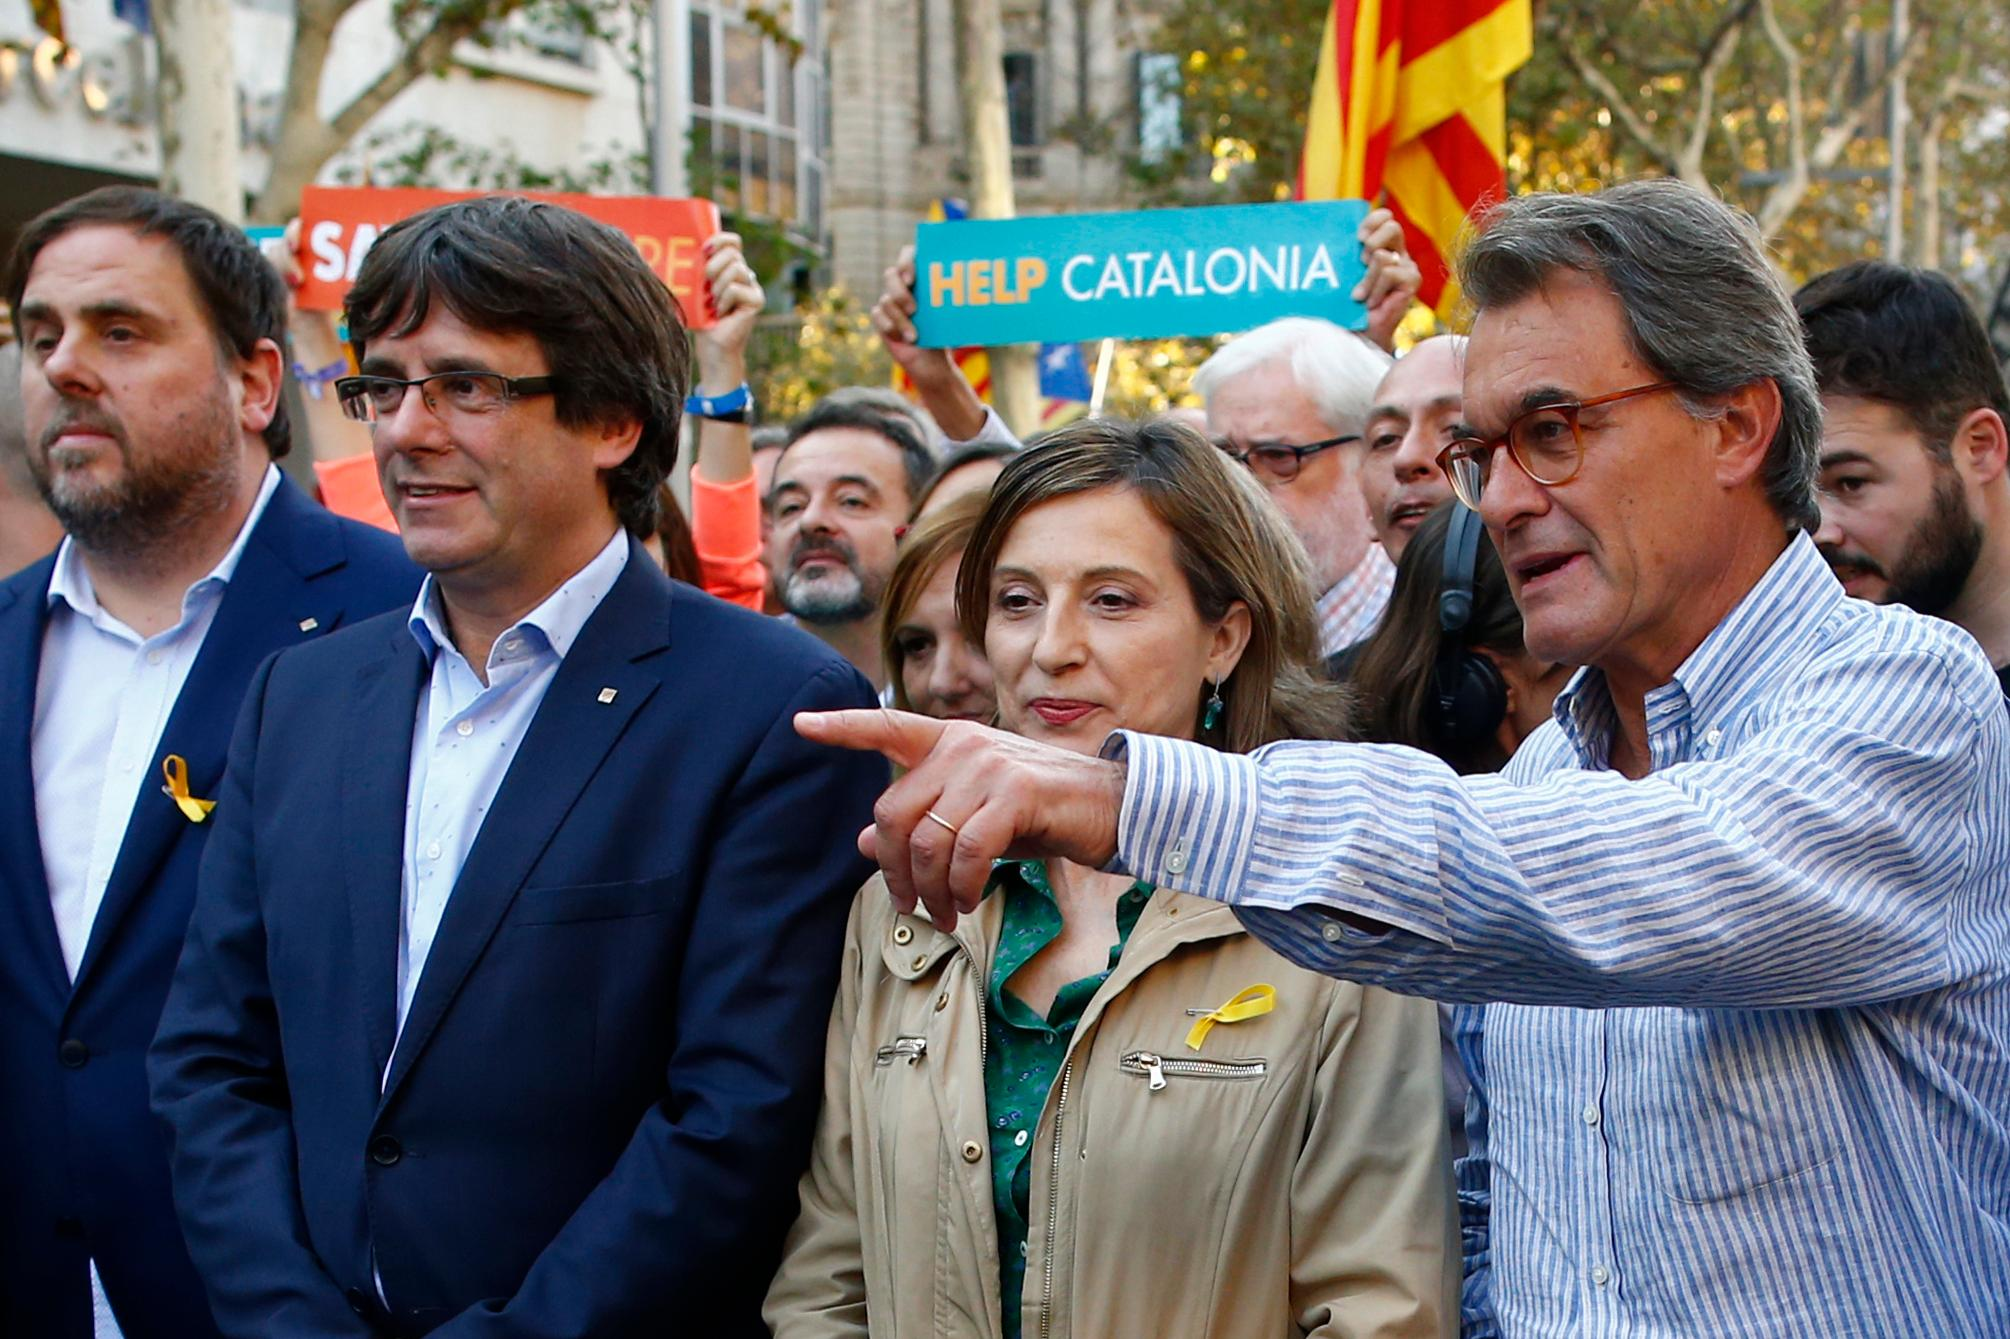 Former Catalan President Artur Mas, right, points next to Catalan deputy president Oriol Junqueras, left, President Carles Puigdemont, 2nd left and Carme Forcadell, speaker of the house in the Catalan parliament during a protest against the National Court's decision to imprison civil society leaders, in Barcelona, Spain, Saturday, Oct. 21, 2017. The Spanish government moved decisively Saturday to use a previously untapped constitutional power so it can take control of Catalonia and derail the independence movement led by separatist politicians in the prosperous industrial region. (AP Photo/Manu Fernandez)